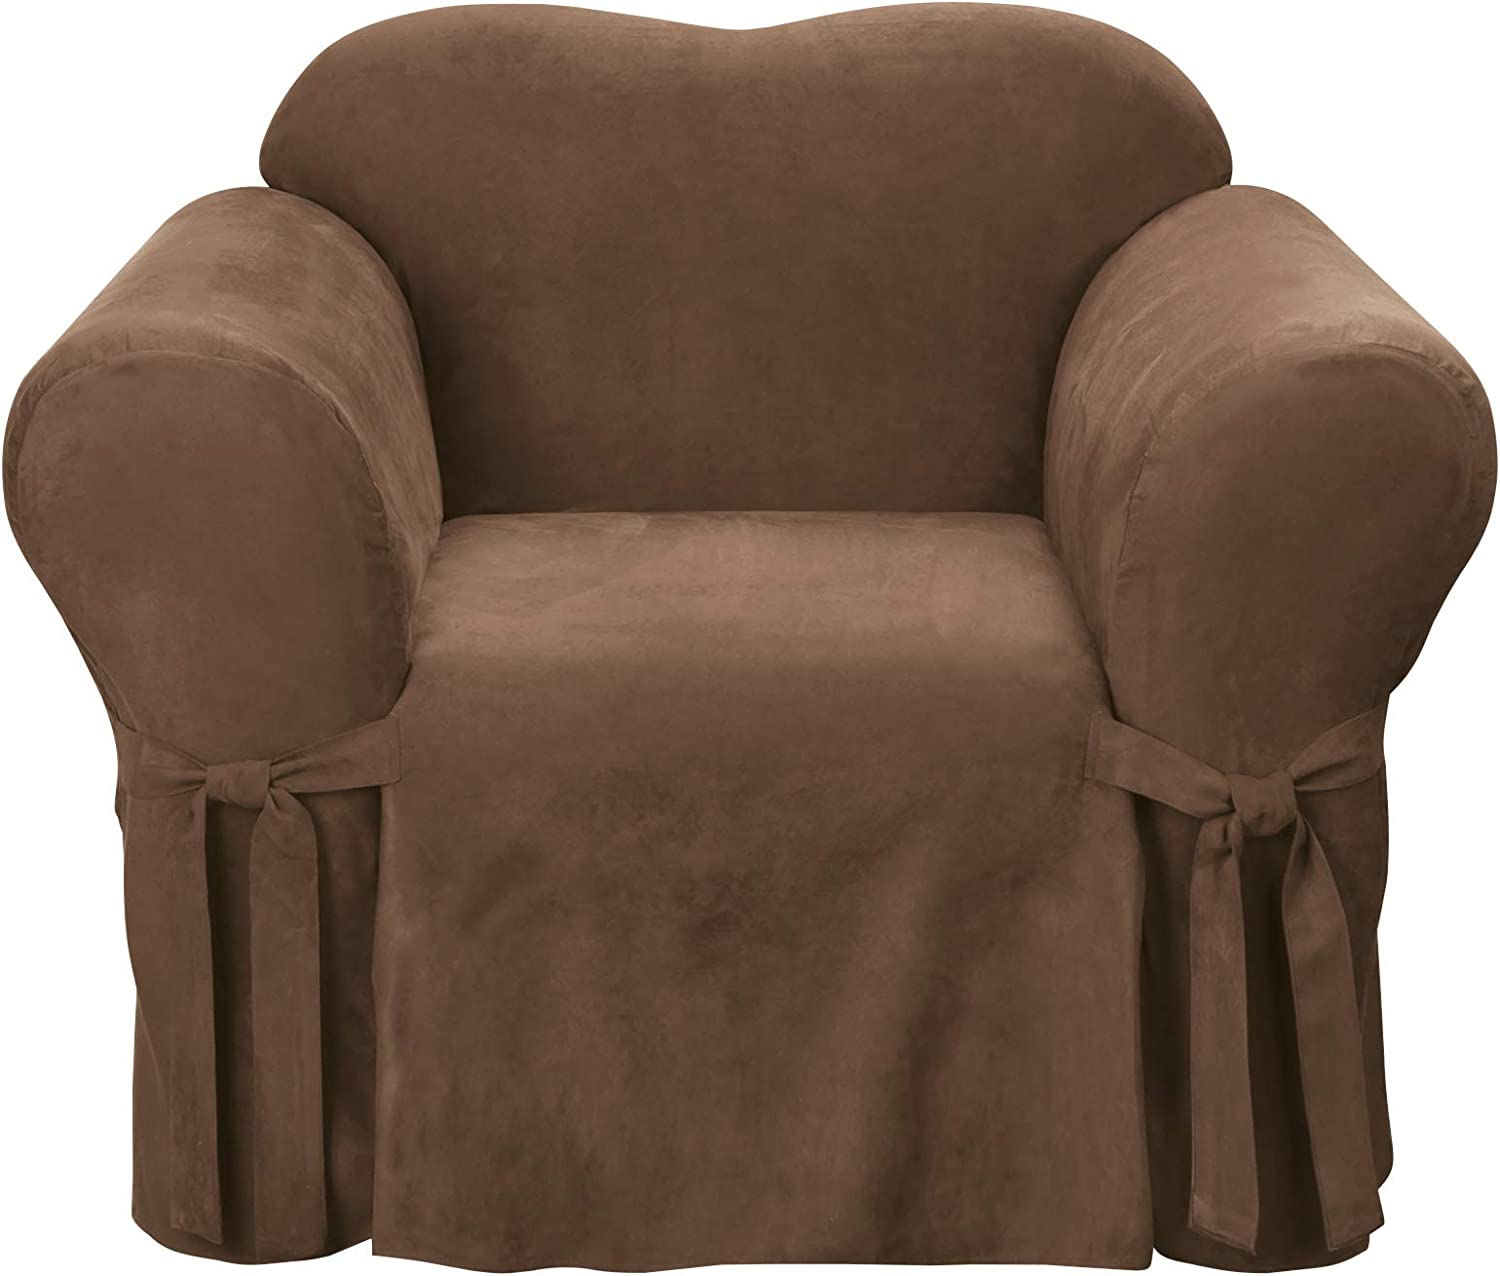 SureFit Home Décor Soft Suede Relaxed Chair Cover Cushion Fi Challenge the lowest price of Japan Nashville-Davidson Mall